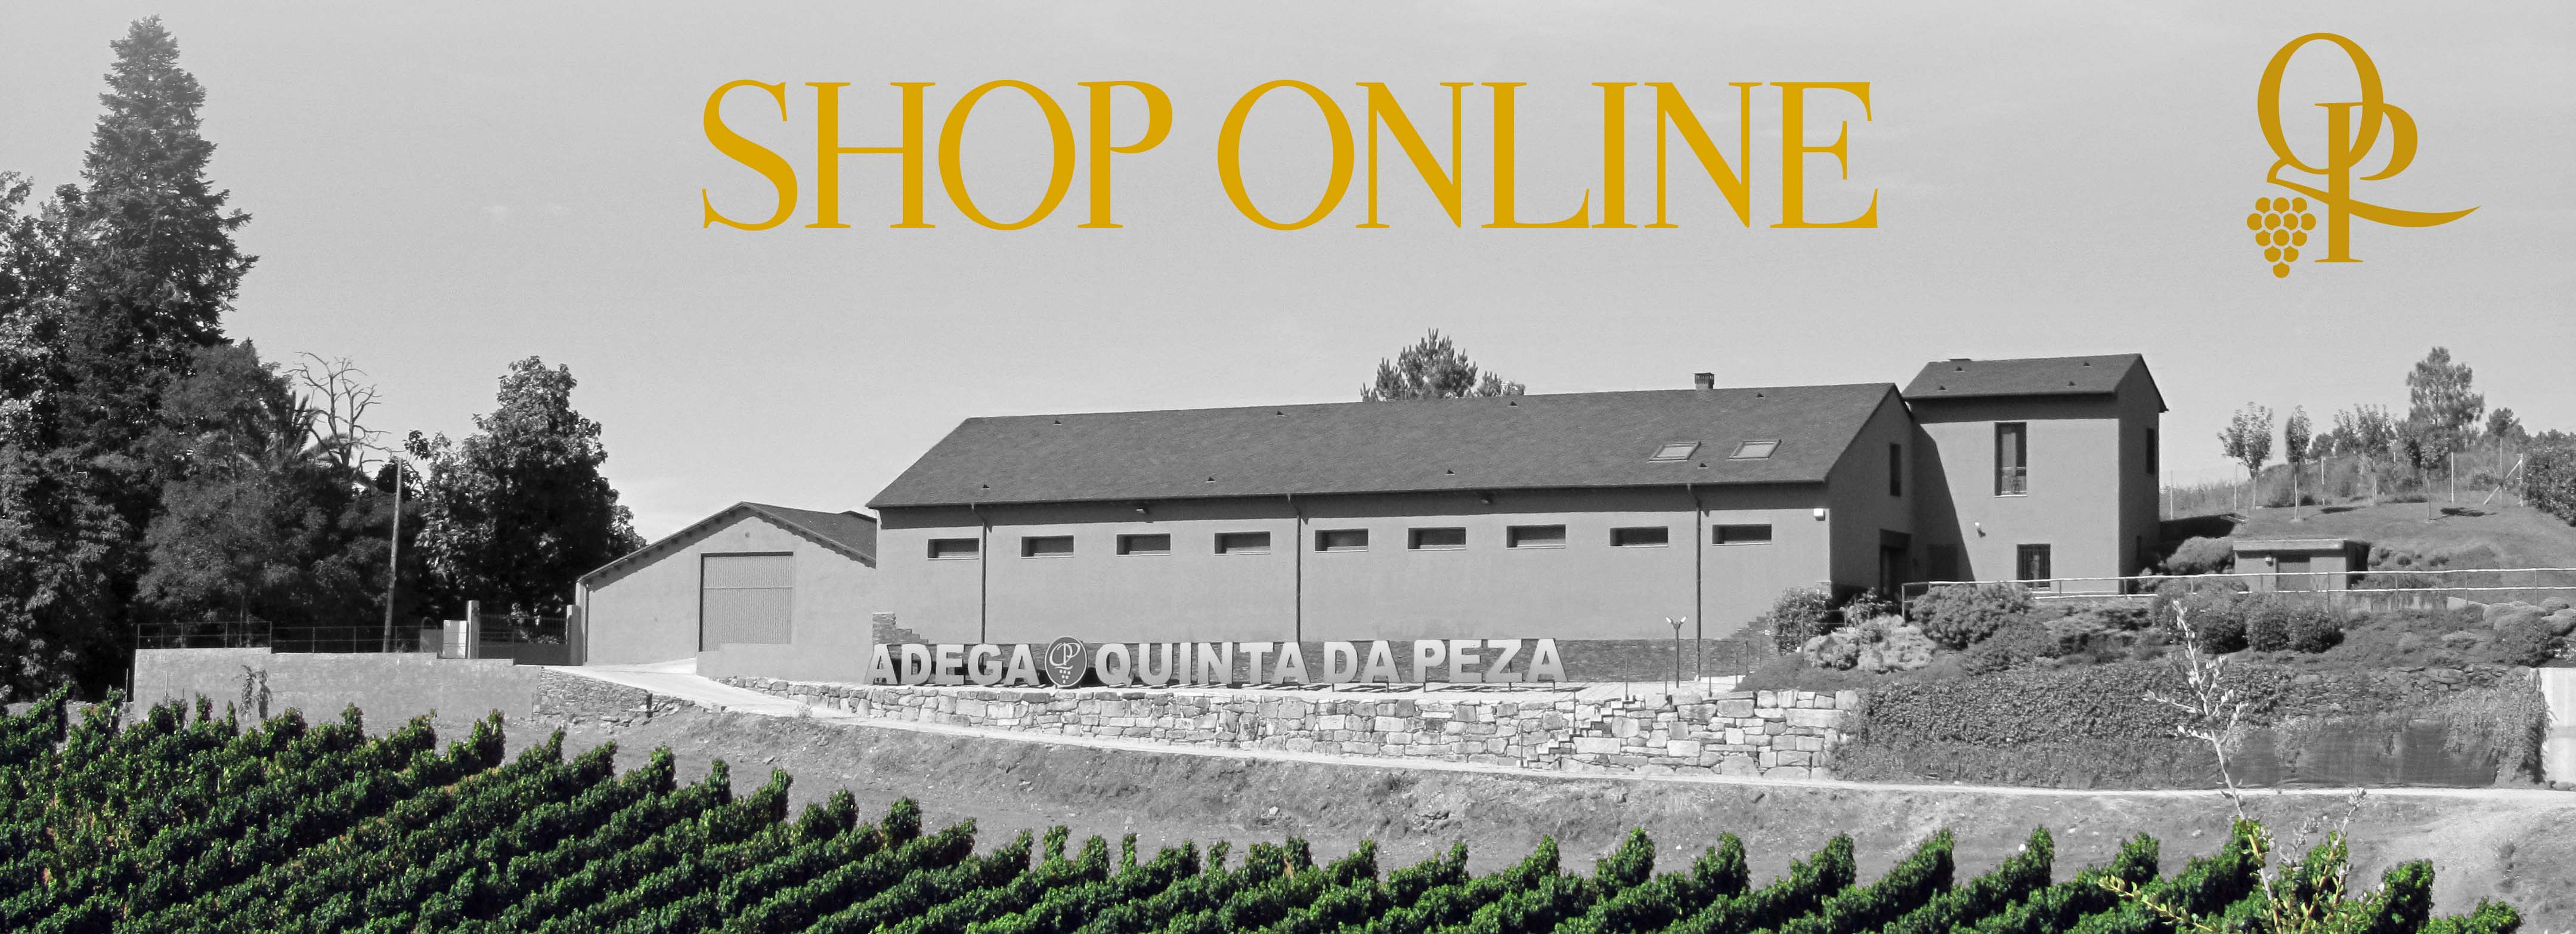 Discover our store